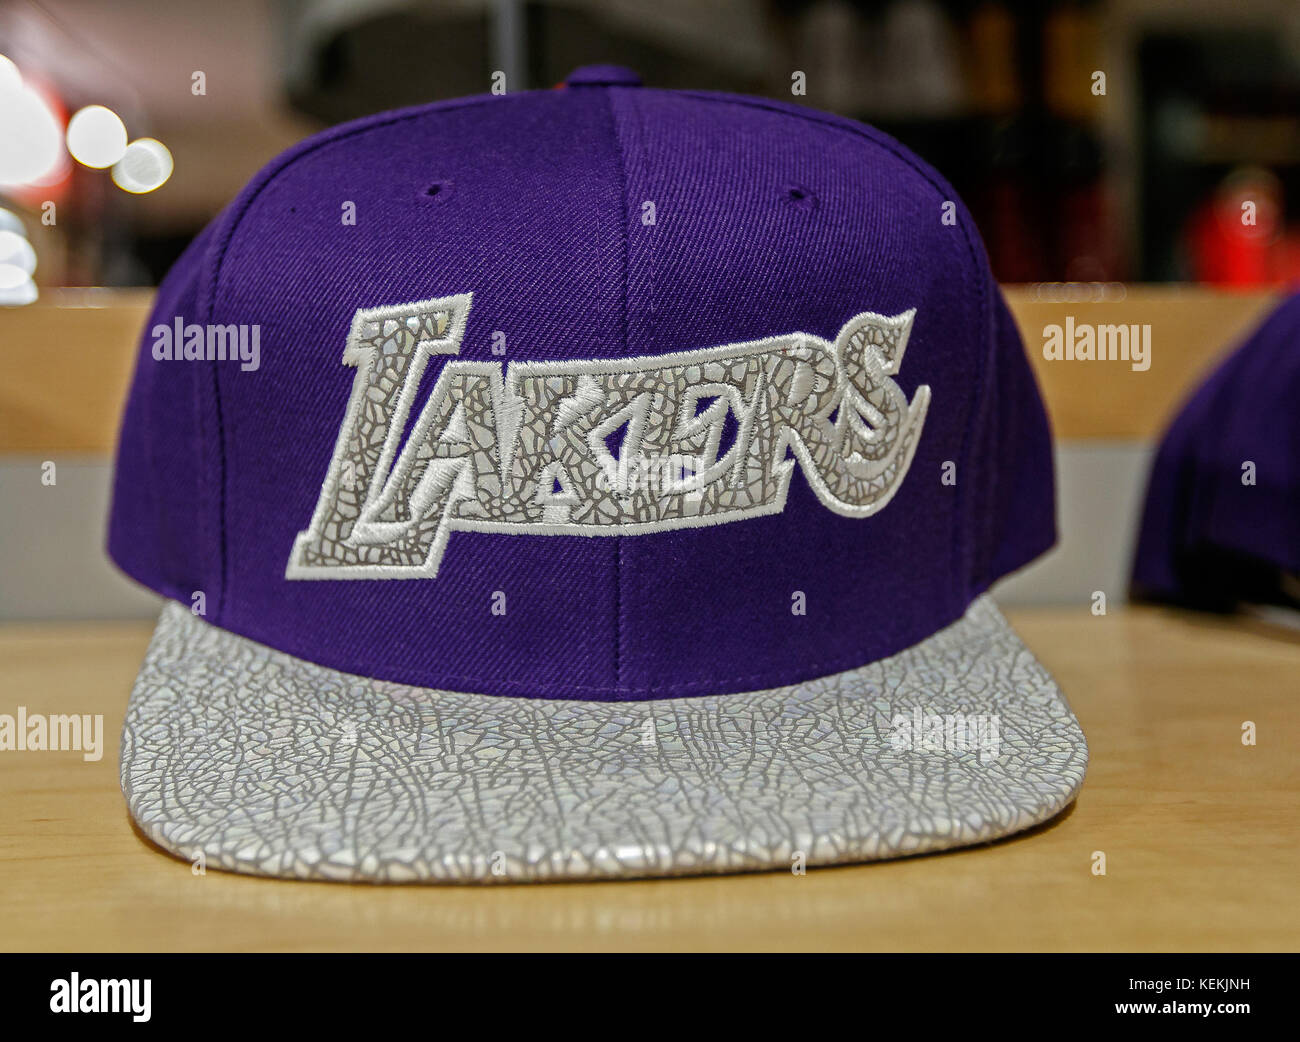 5332889badf Los Angeles Lakers hat on sale in the NBA store in Manhattan. - Stock Image